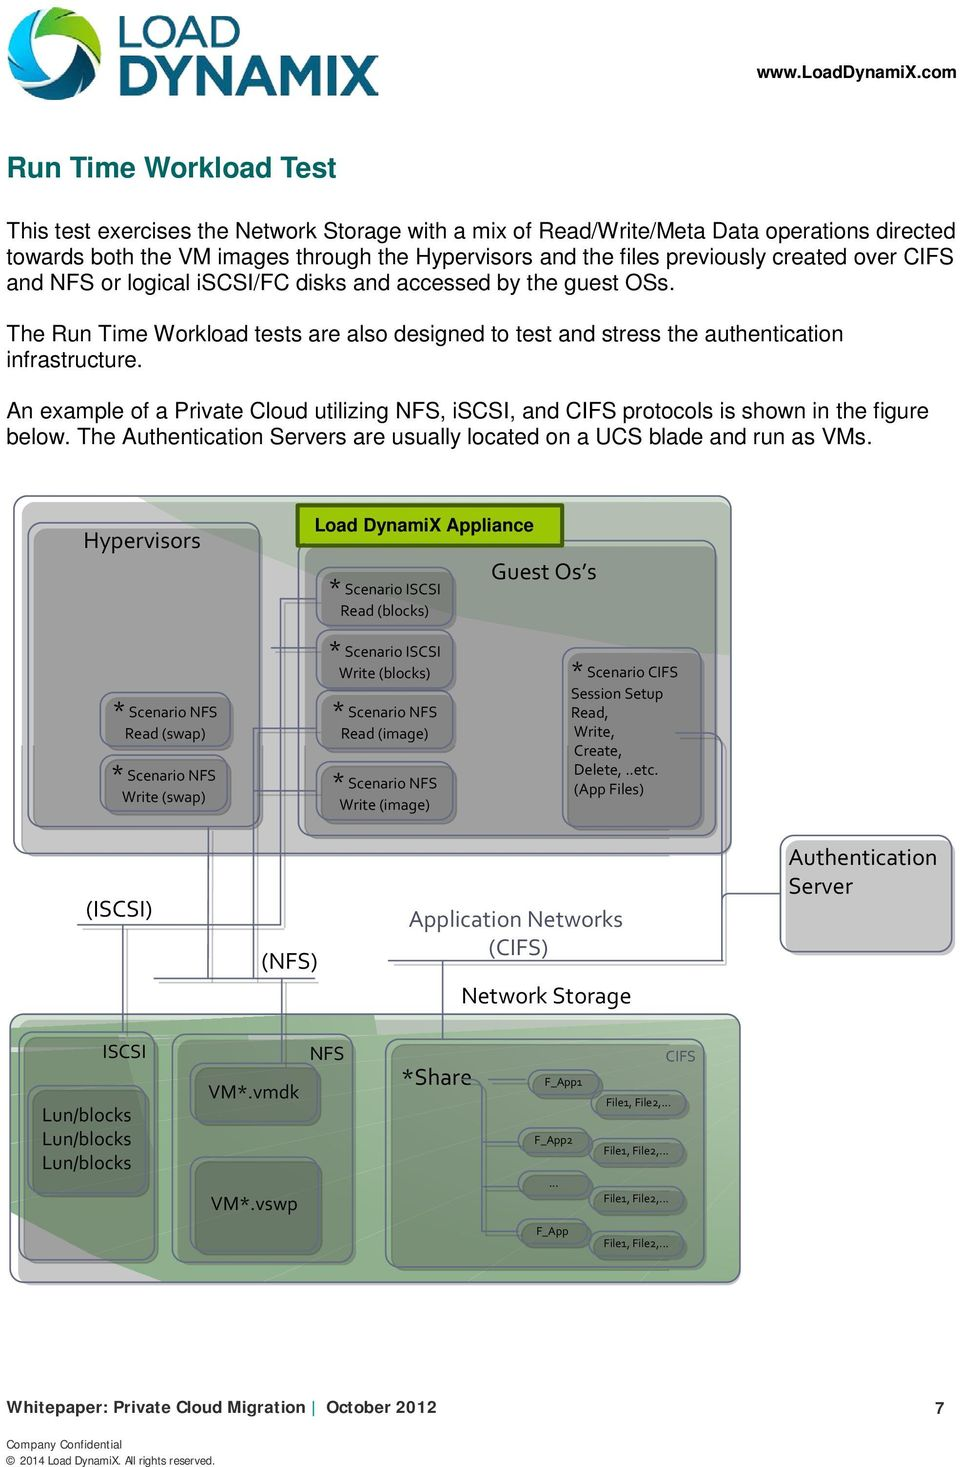 An example of a Private Cloud utilizing NFS, iscsi, and CIFS protocols is shown in the figure below. The Authentication Servers are usually located on a UCS blade and run as VMs.